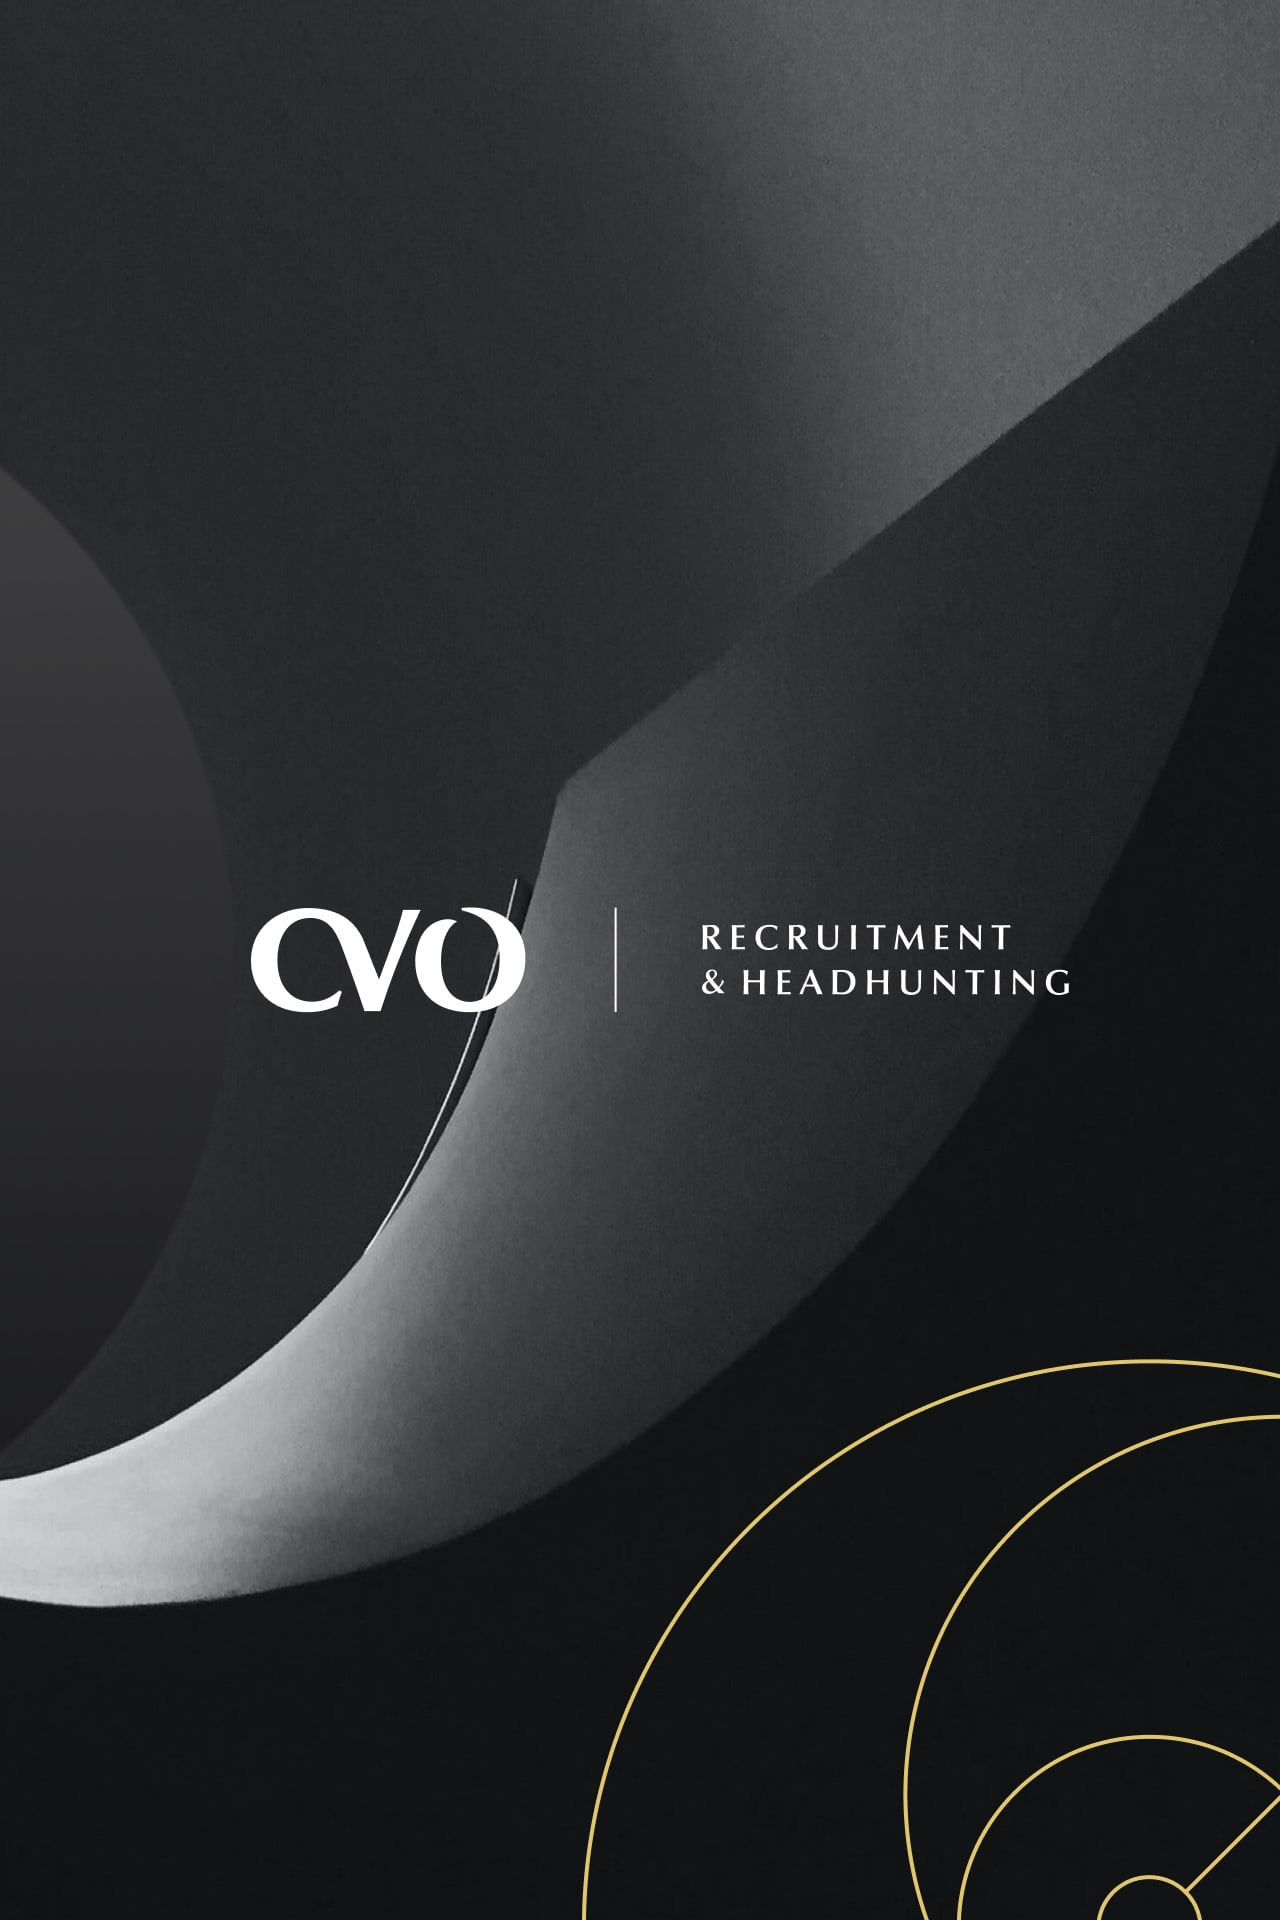 CVO Recruitment